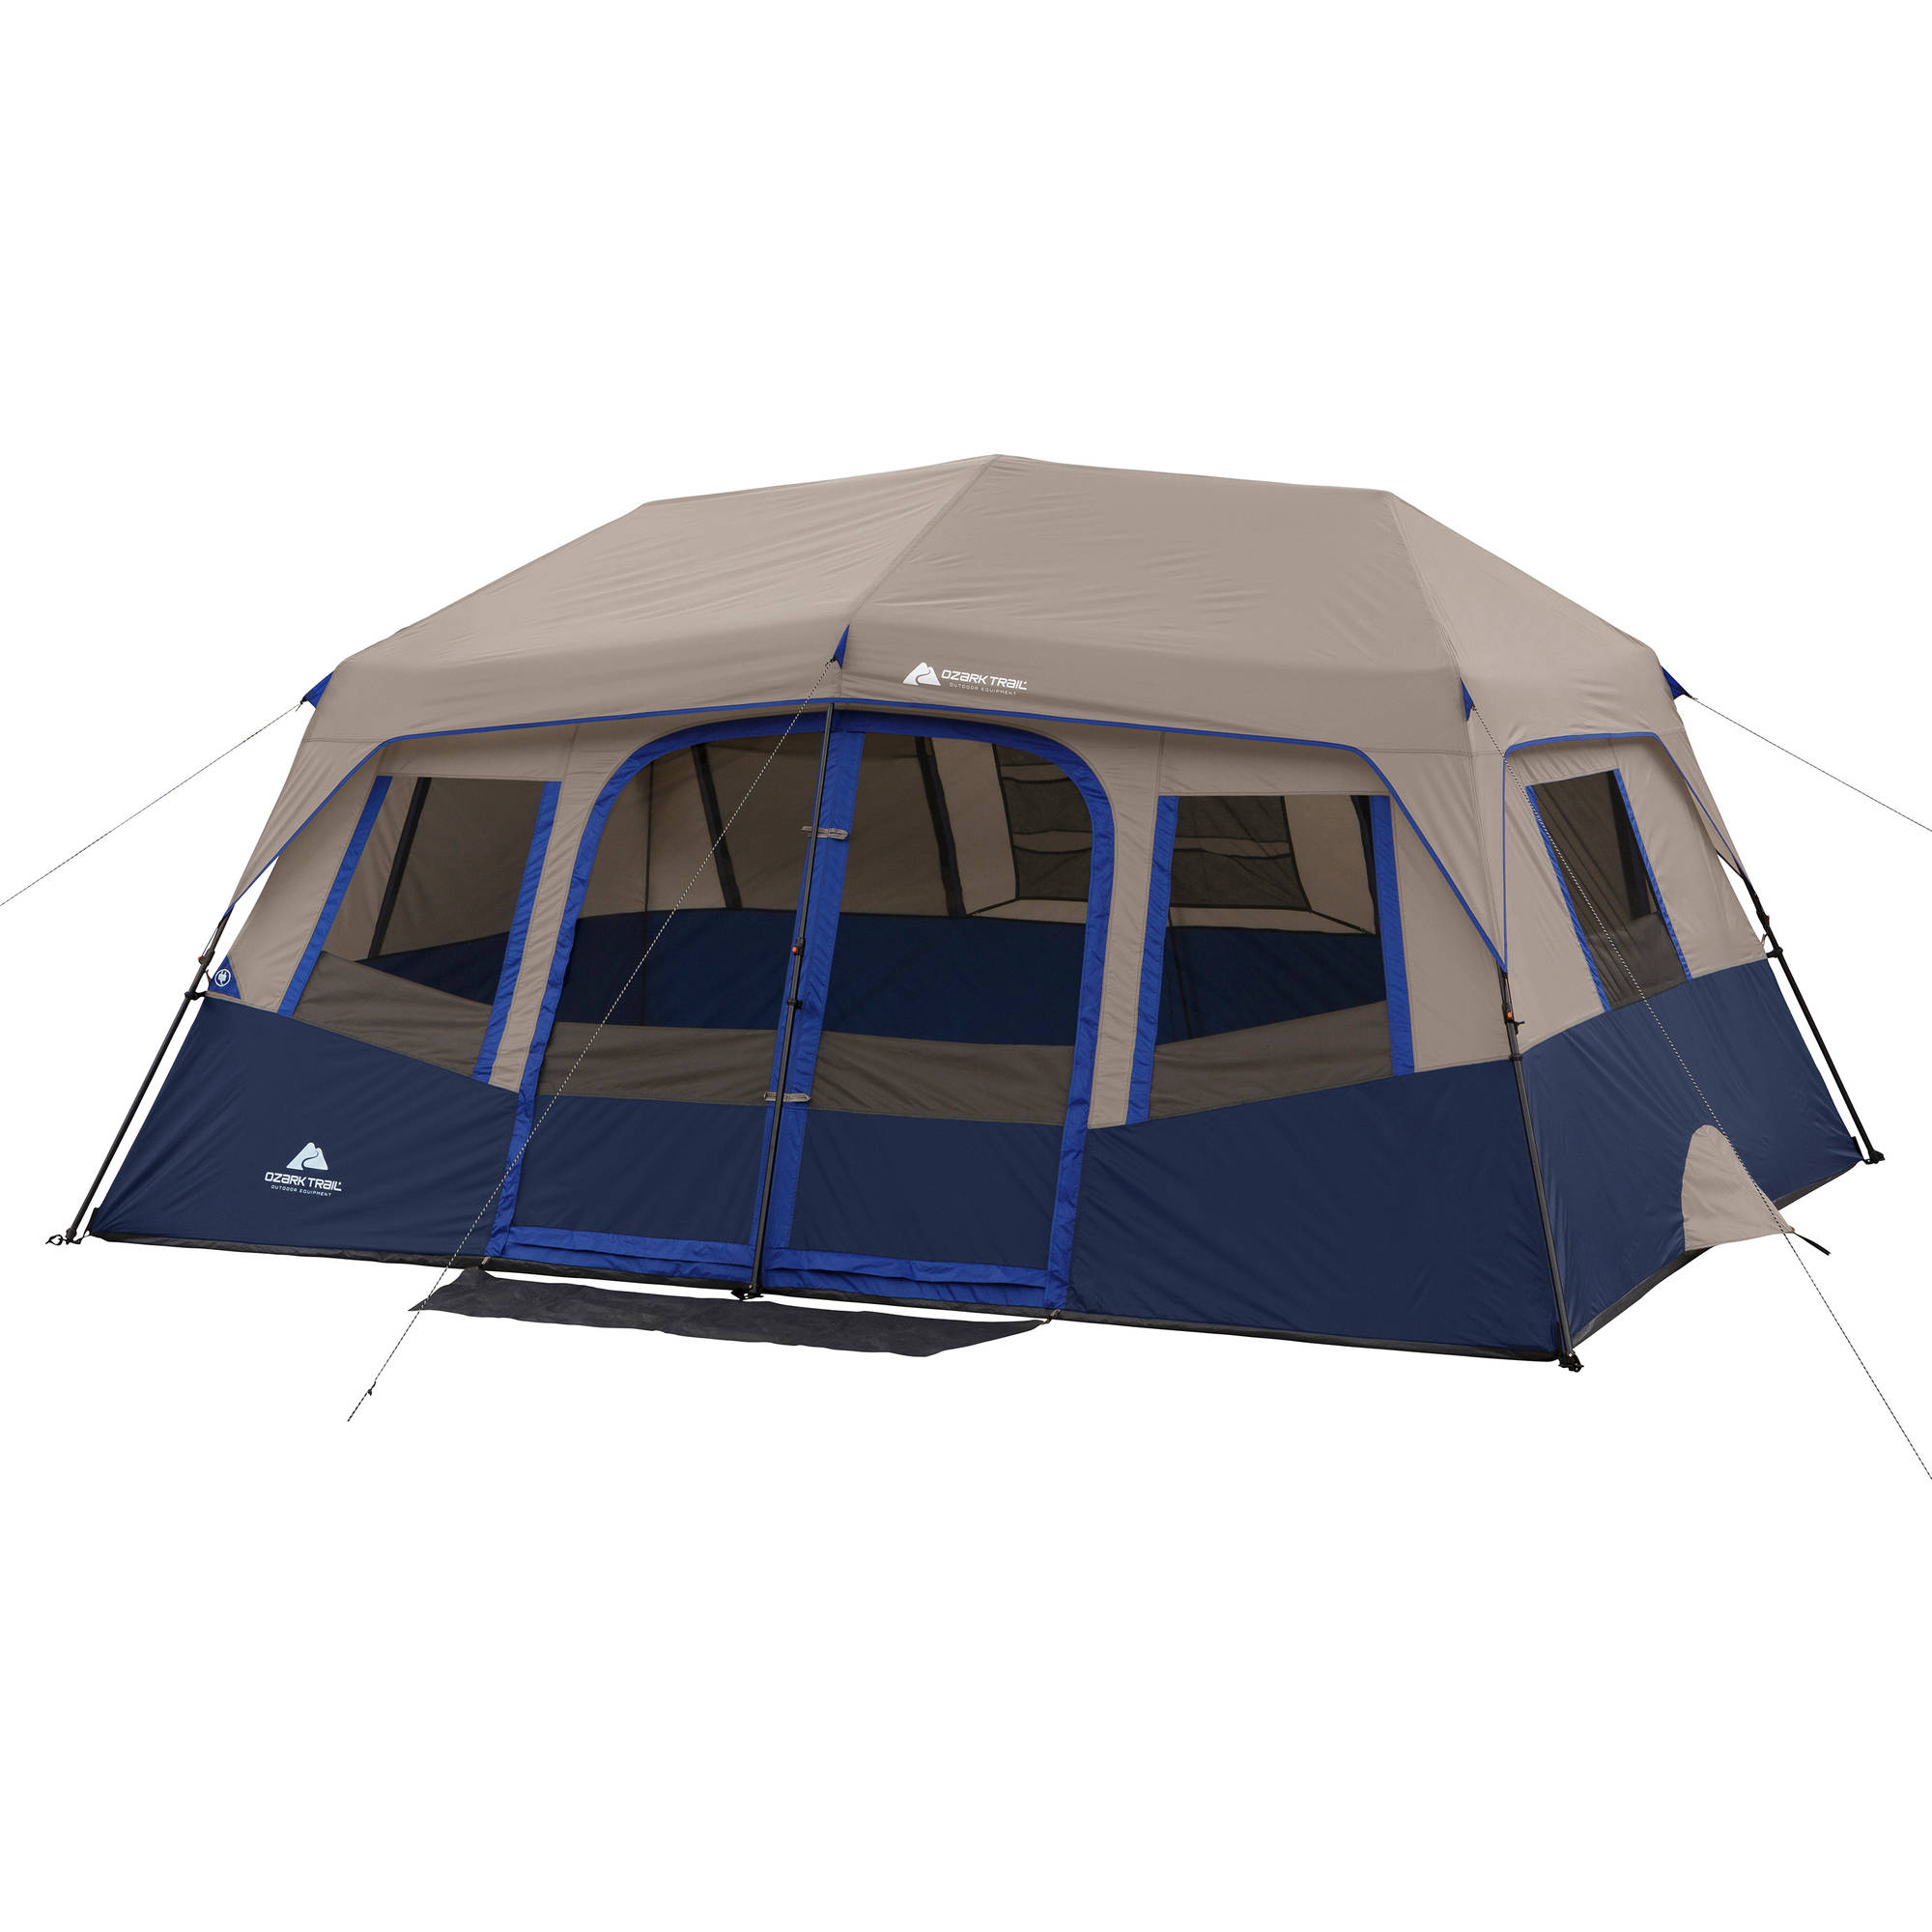 ip screen tent com family with trail ozark walmart cabin porch cabins person